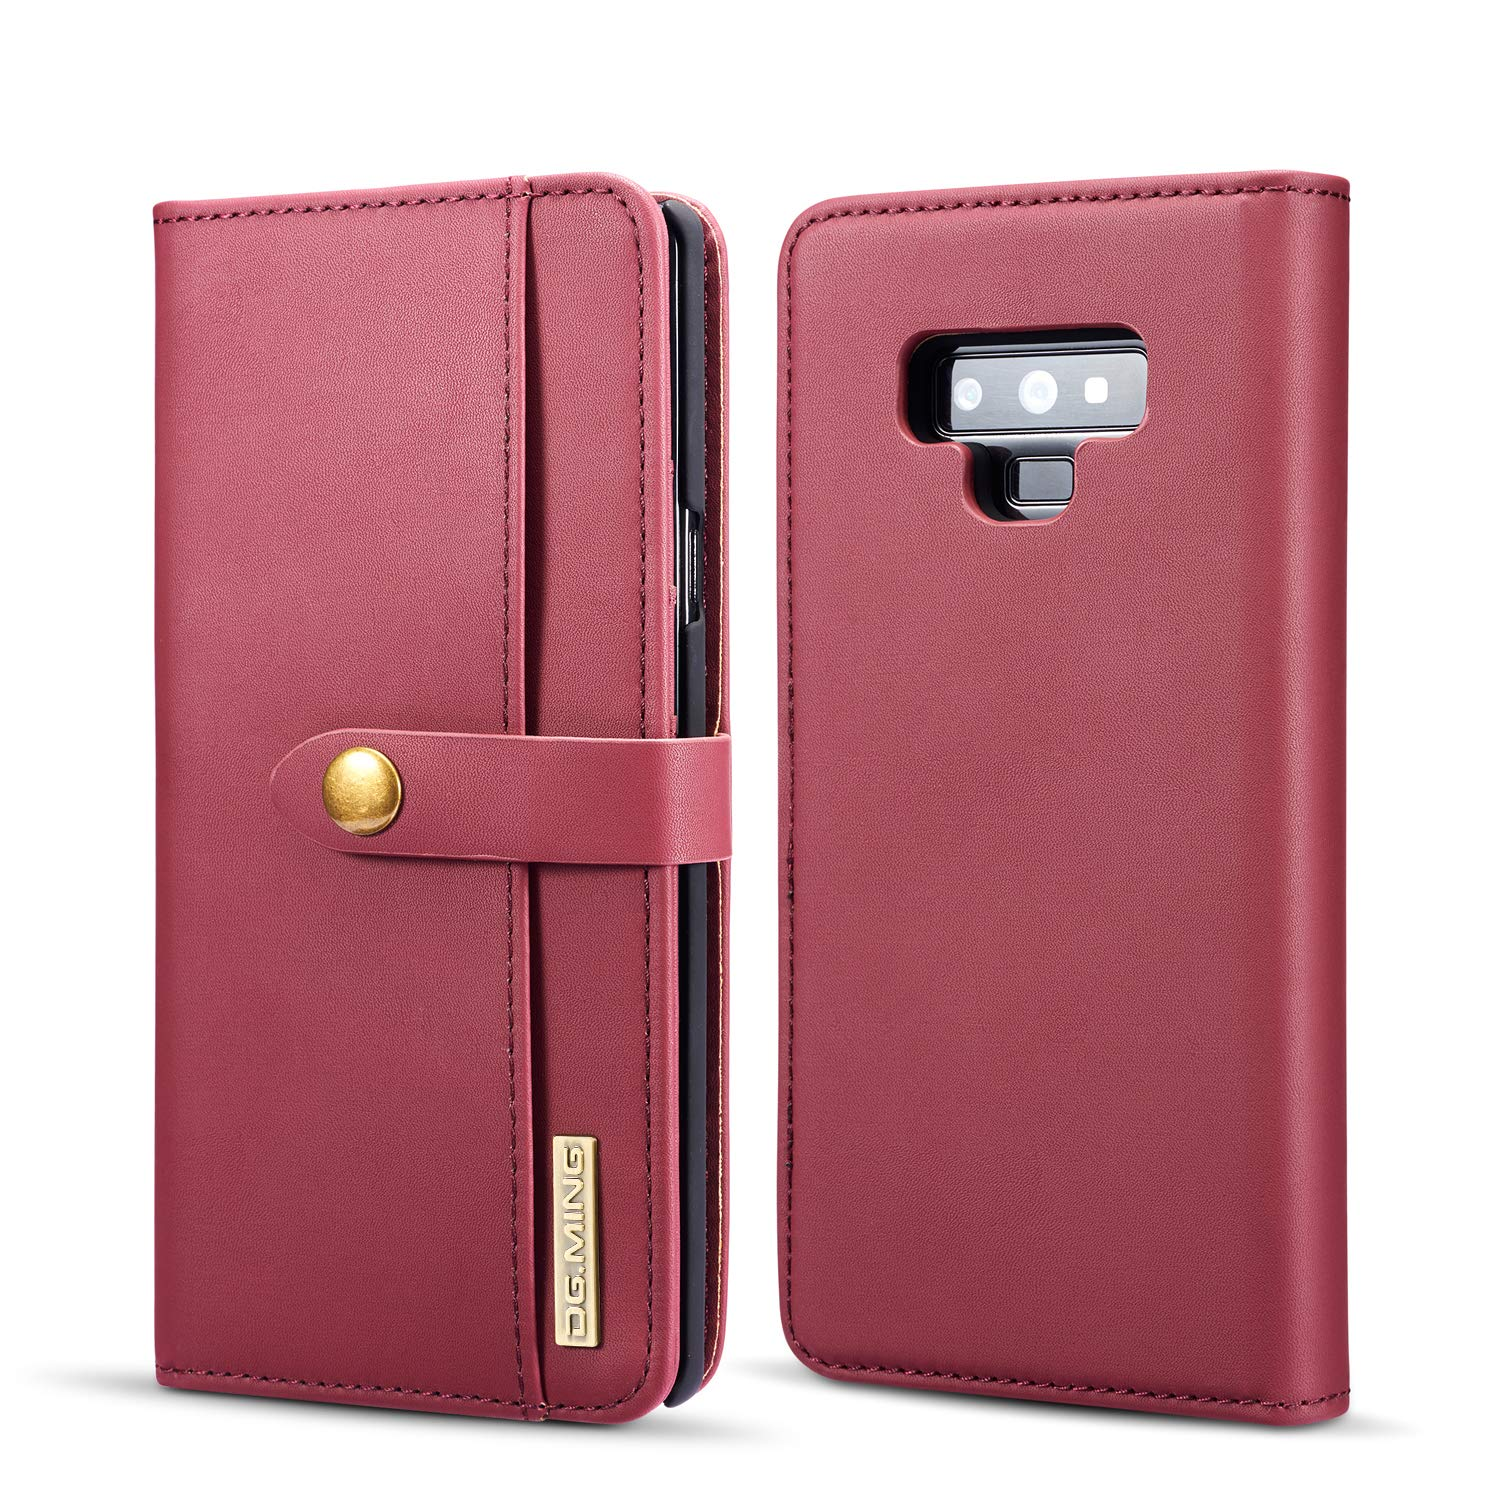 FUNIT Galaxy Note 9 Wallet Case [Soft Sheep Skin] Detachable Premium Leather Stand Feature Card Cash Slot Holder Flip Protective Cover for Samsung Galaxy Note 9 6.4 Inch (Red) MING02-Galaxy Note 9